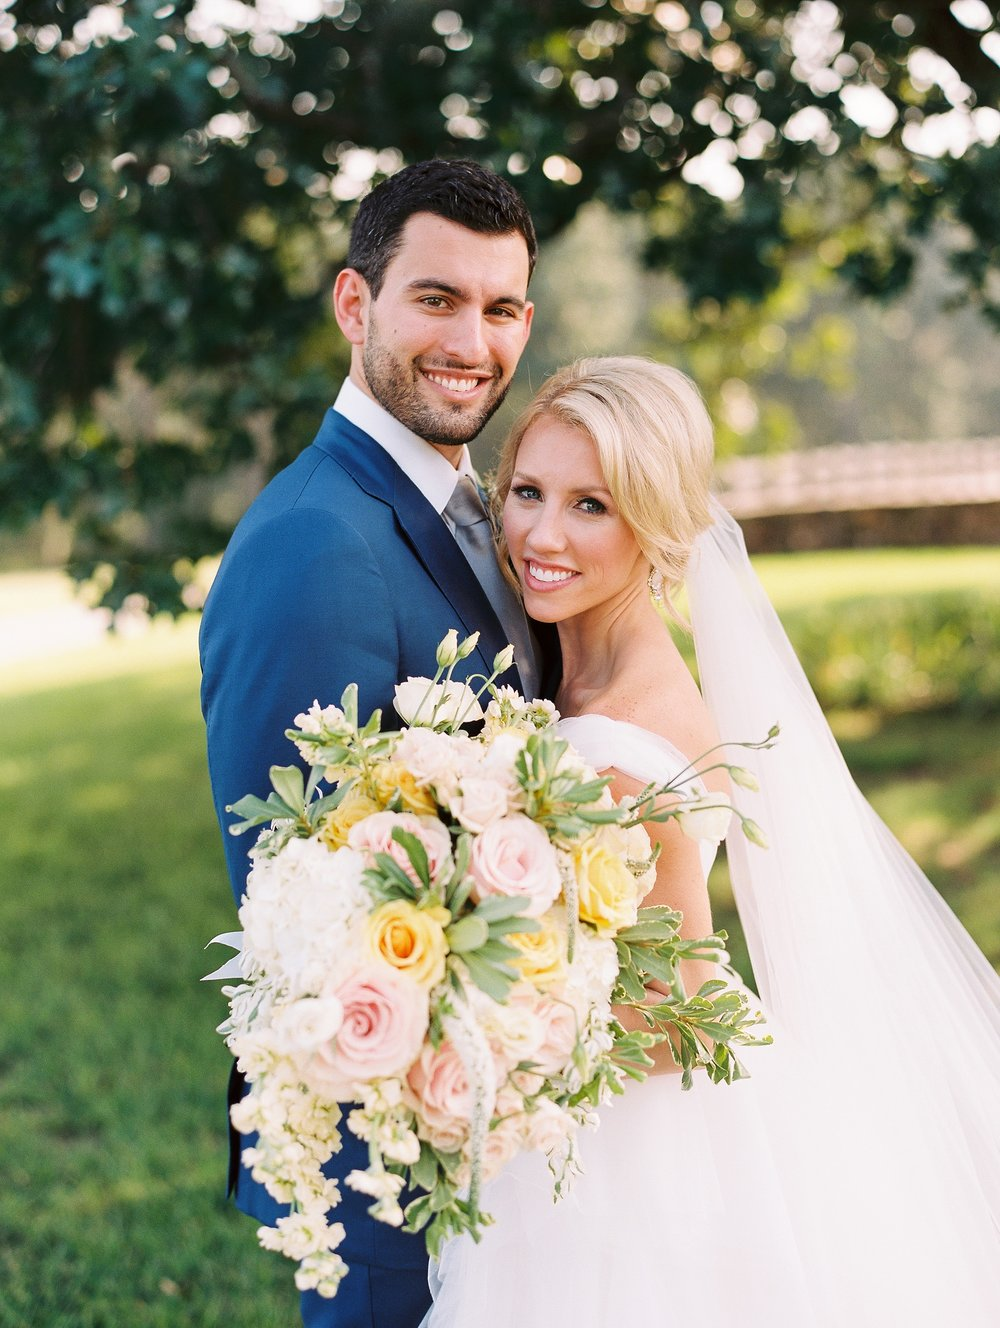 CMT Music City Jessica Mack and Andreas Plackis Wedding_1473.jpg